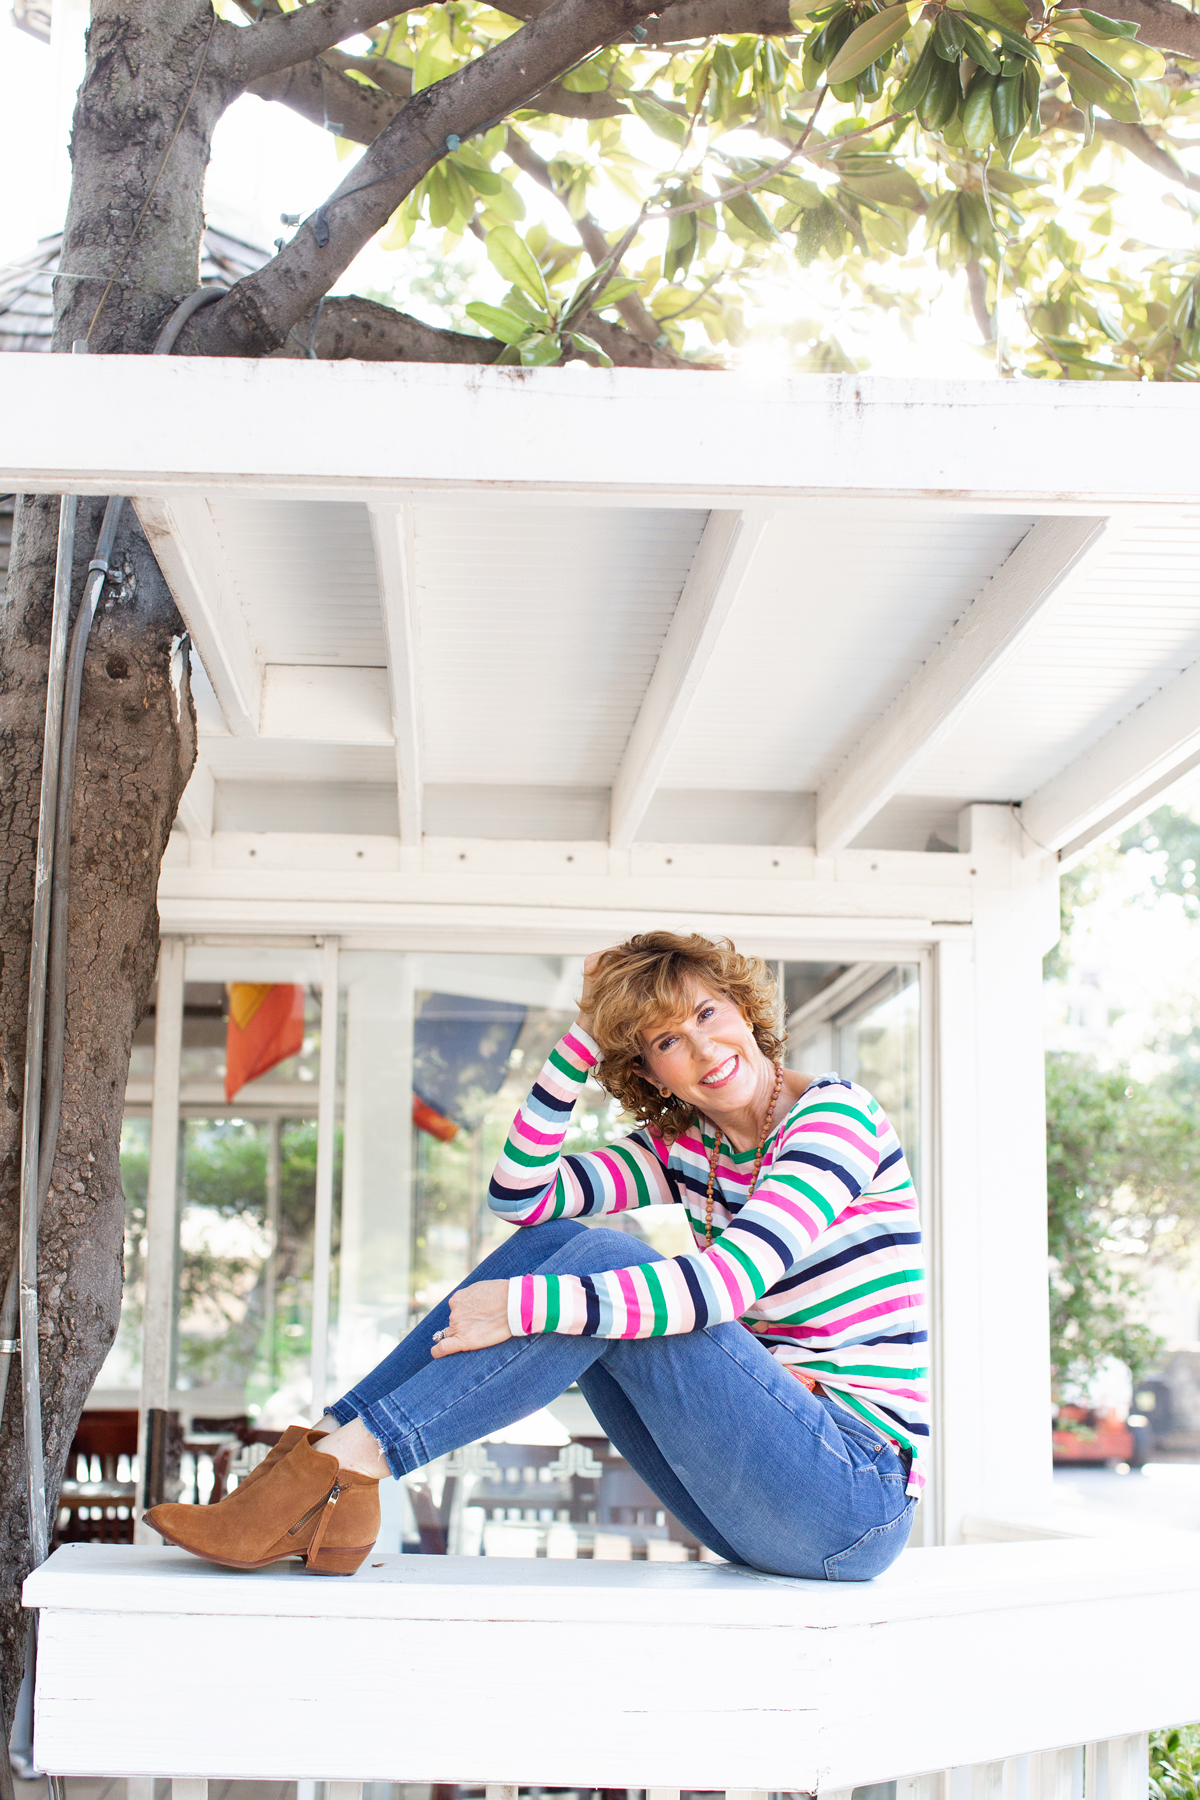 woman in striped top, jeans, and brown booties sitting on a white railing